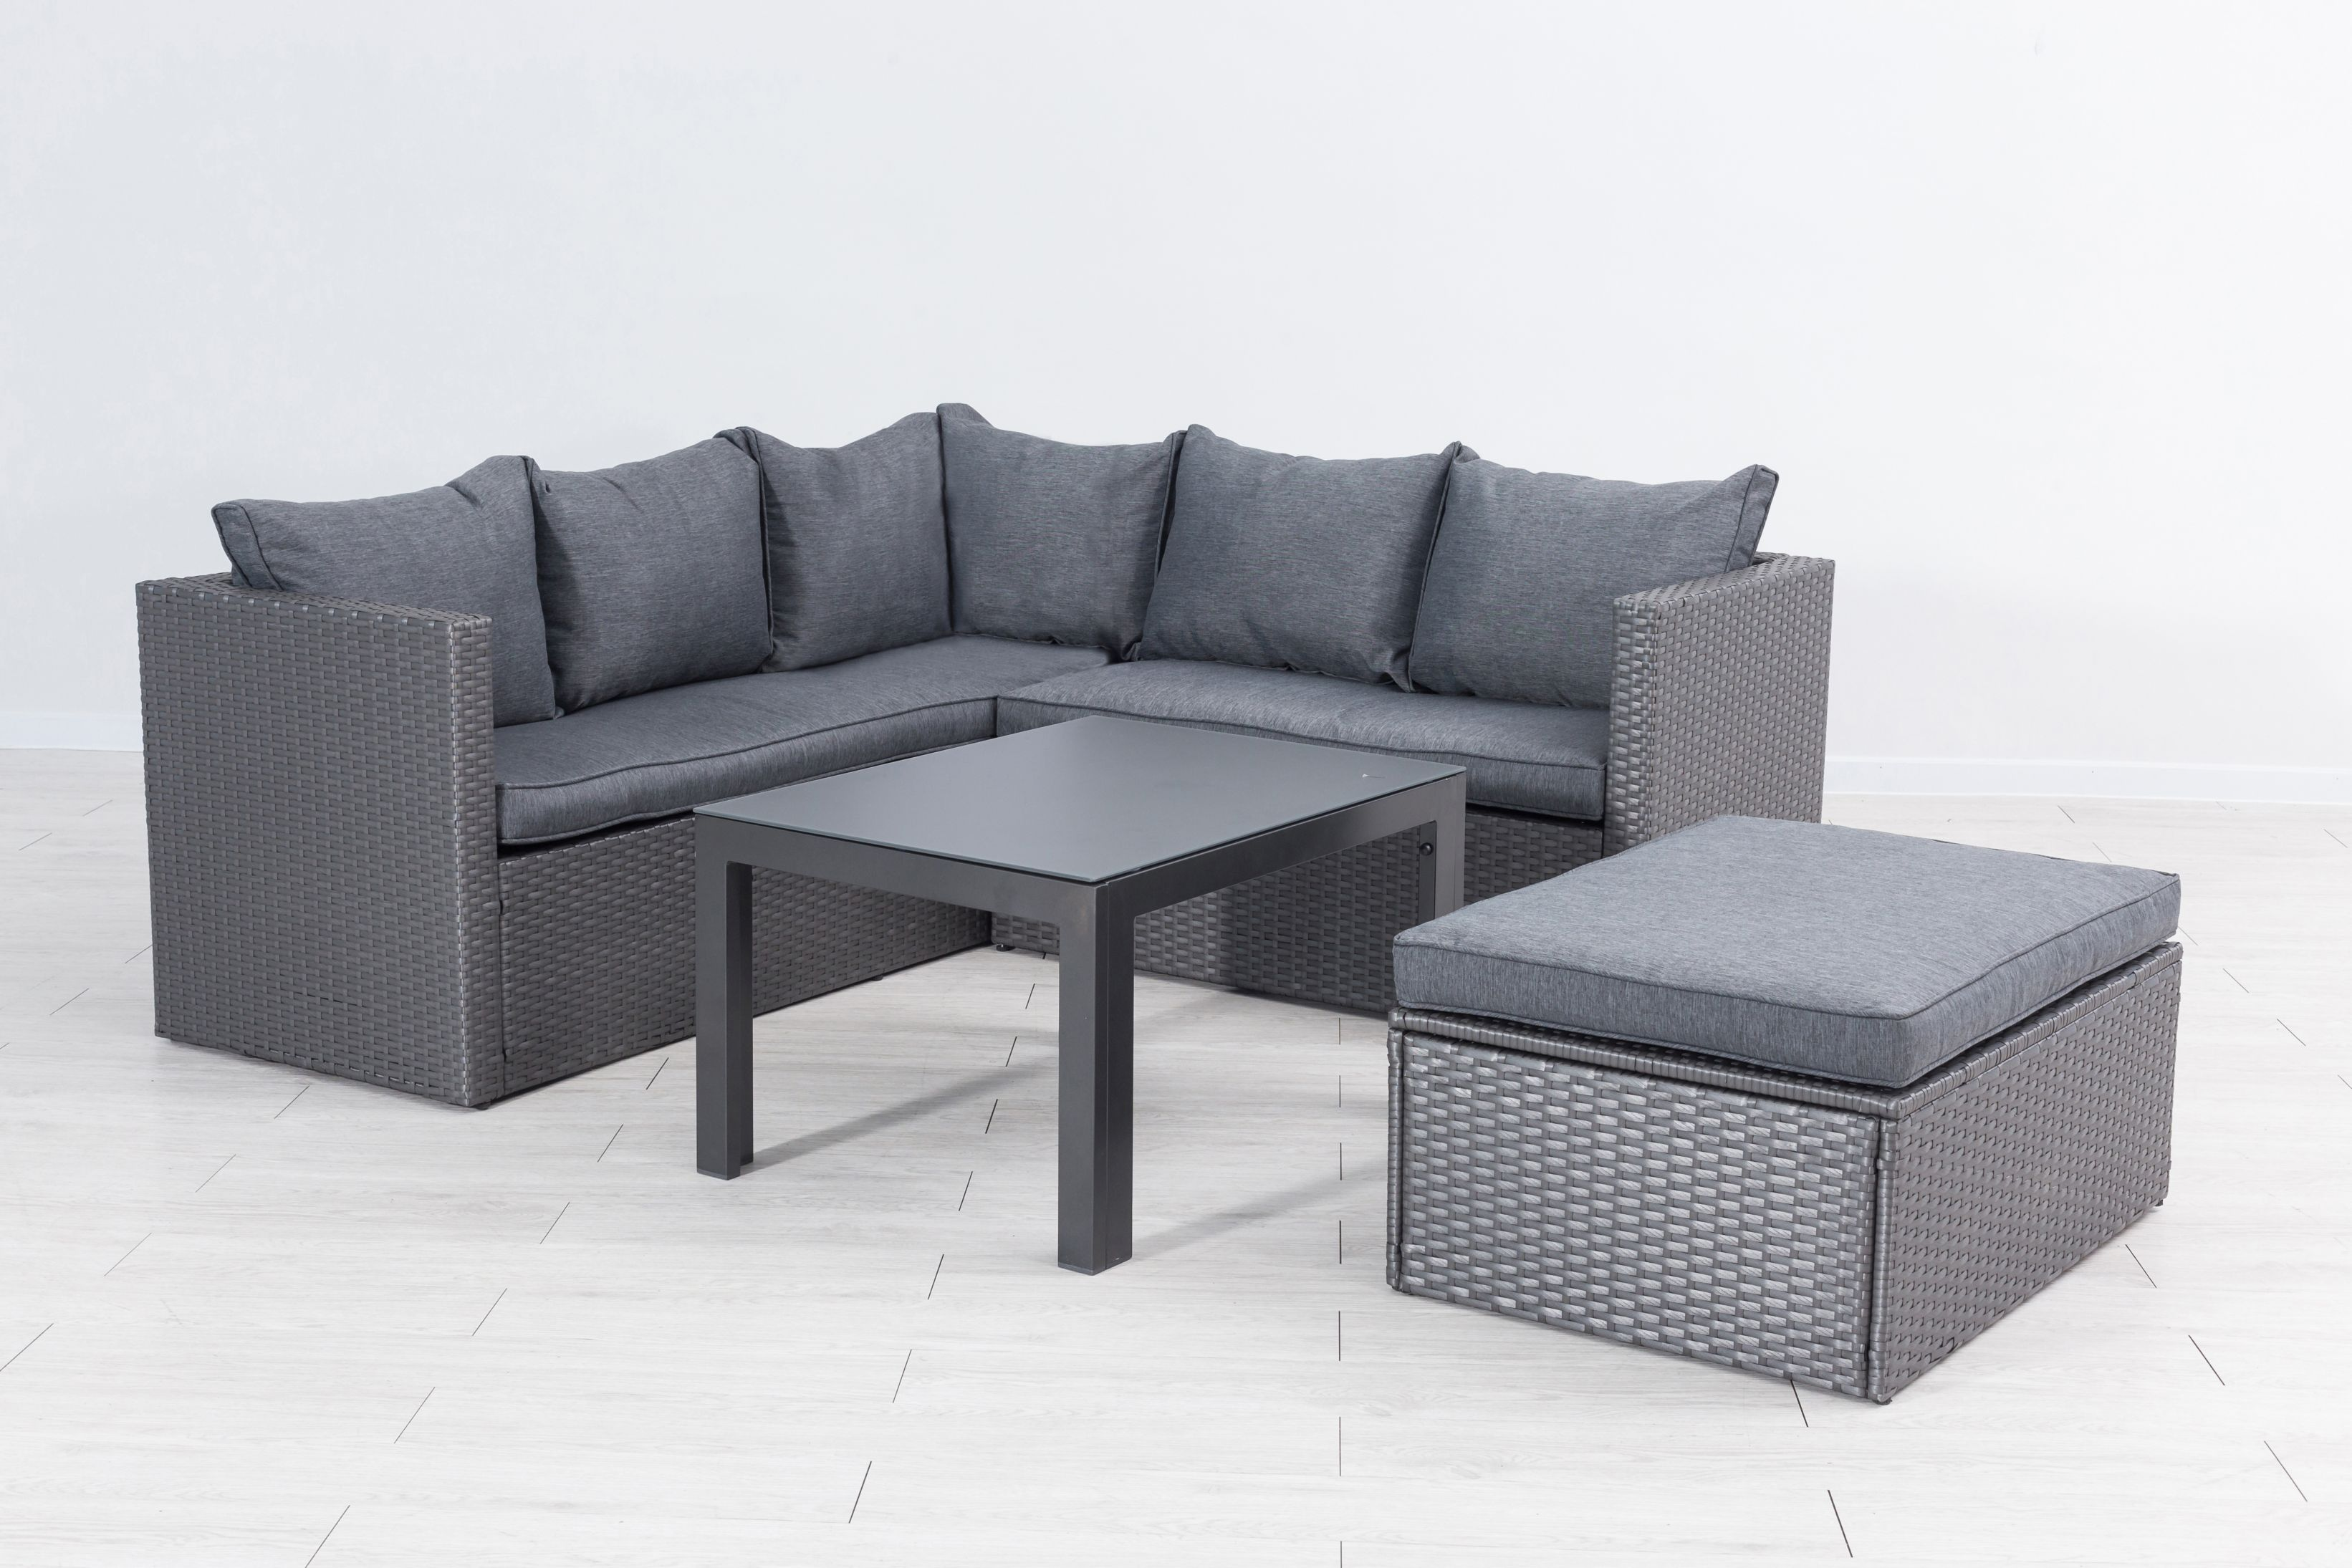 mora polyrattan ecklounge gartenm bel sitzgruppe grau. Black Bedroom Furniture Sets. Home Design Ideas